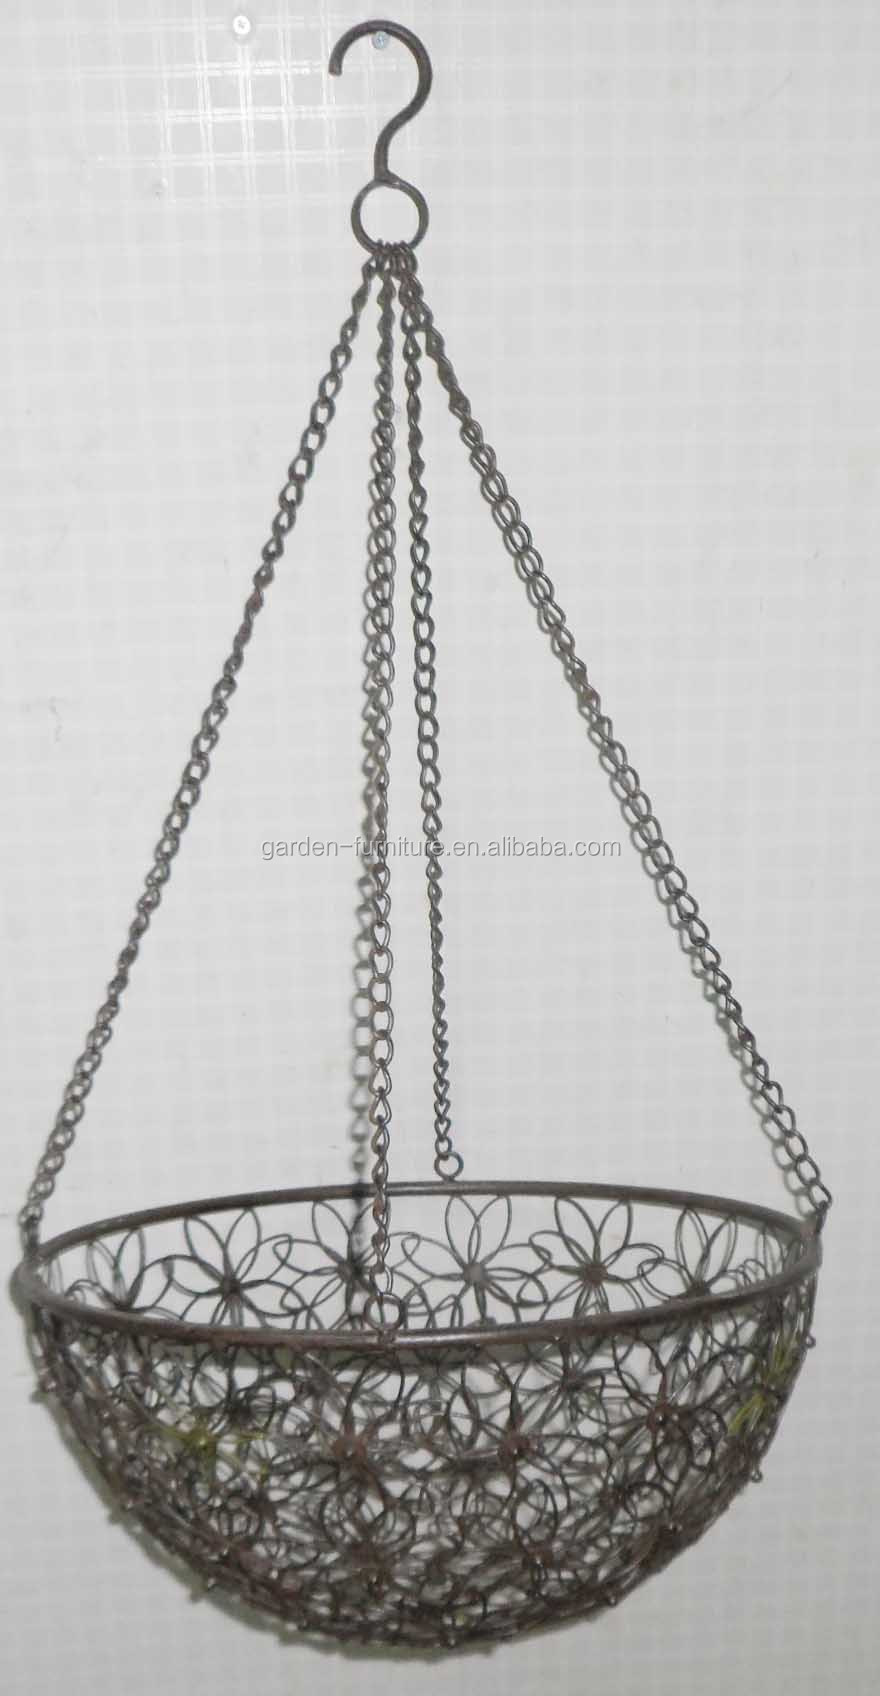 Wholesale Handicraft Garden Outdoor Decor Hanging Flower ... on Decorative Wall Sconces For Flowers Hanging Baskets Delivery id=29265